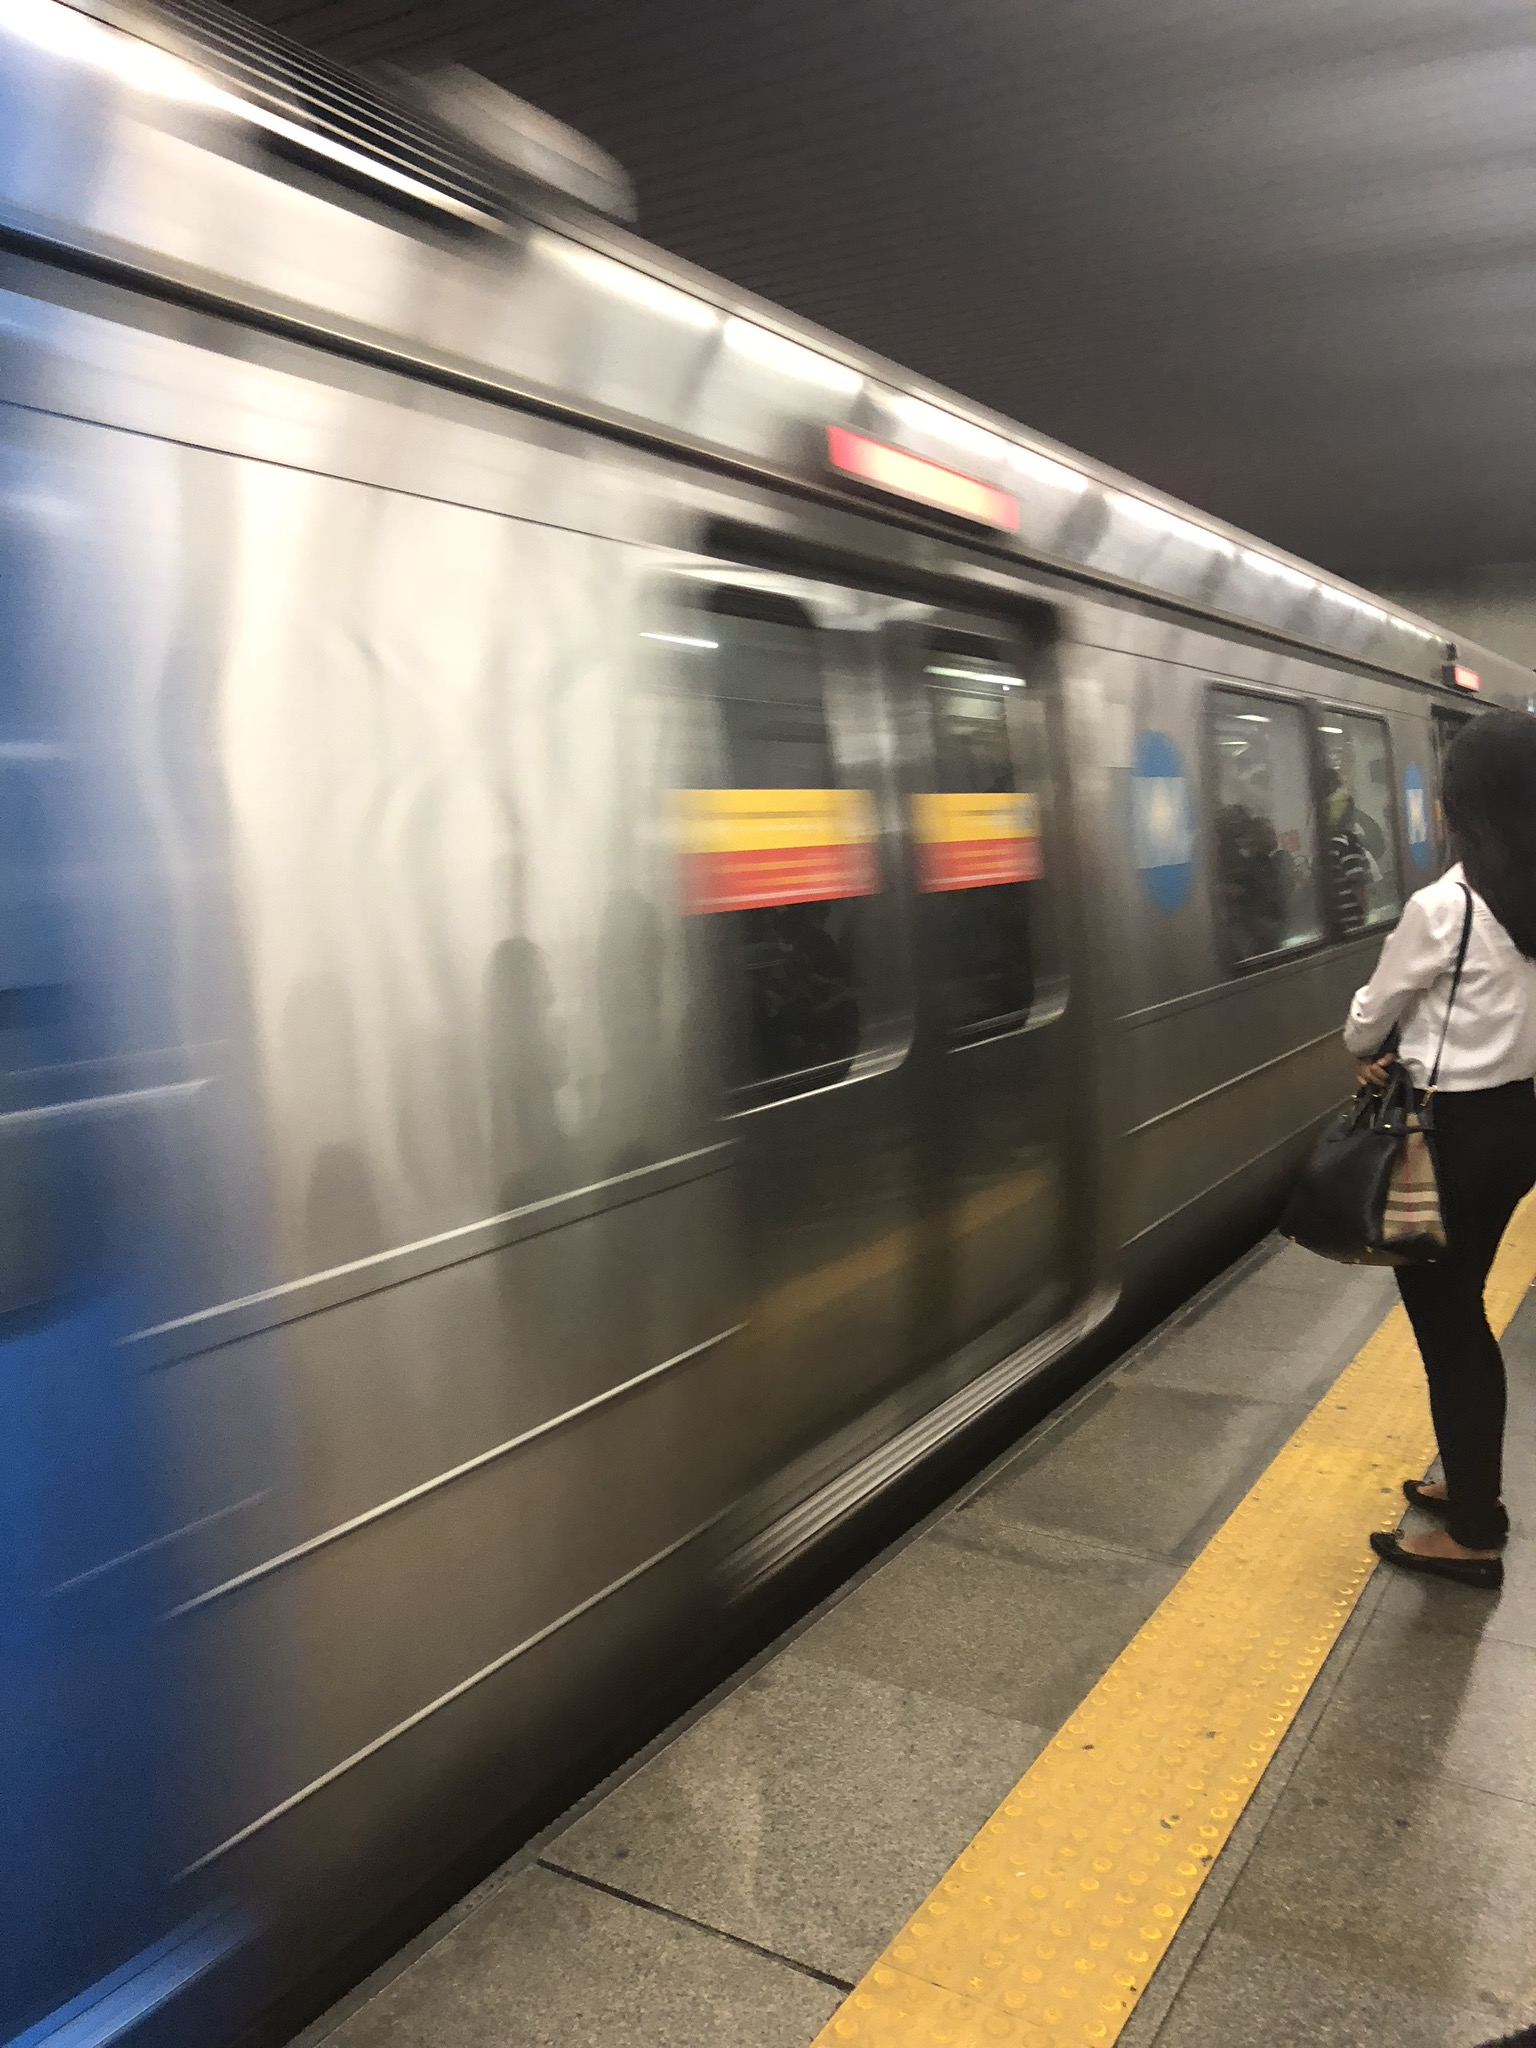 The subway in rio is one of the safest in the world